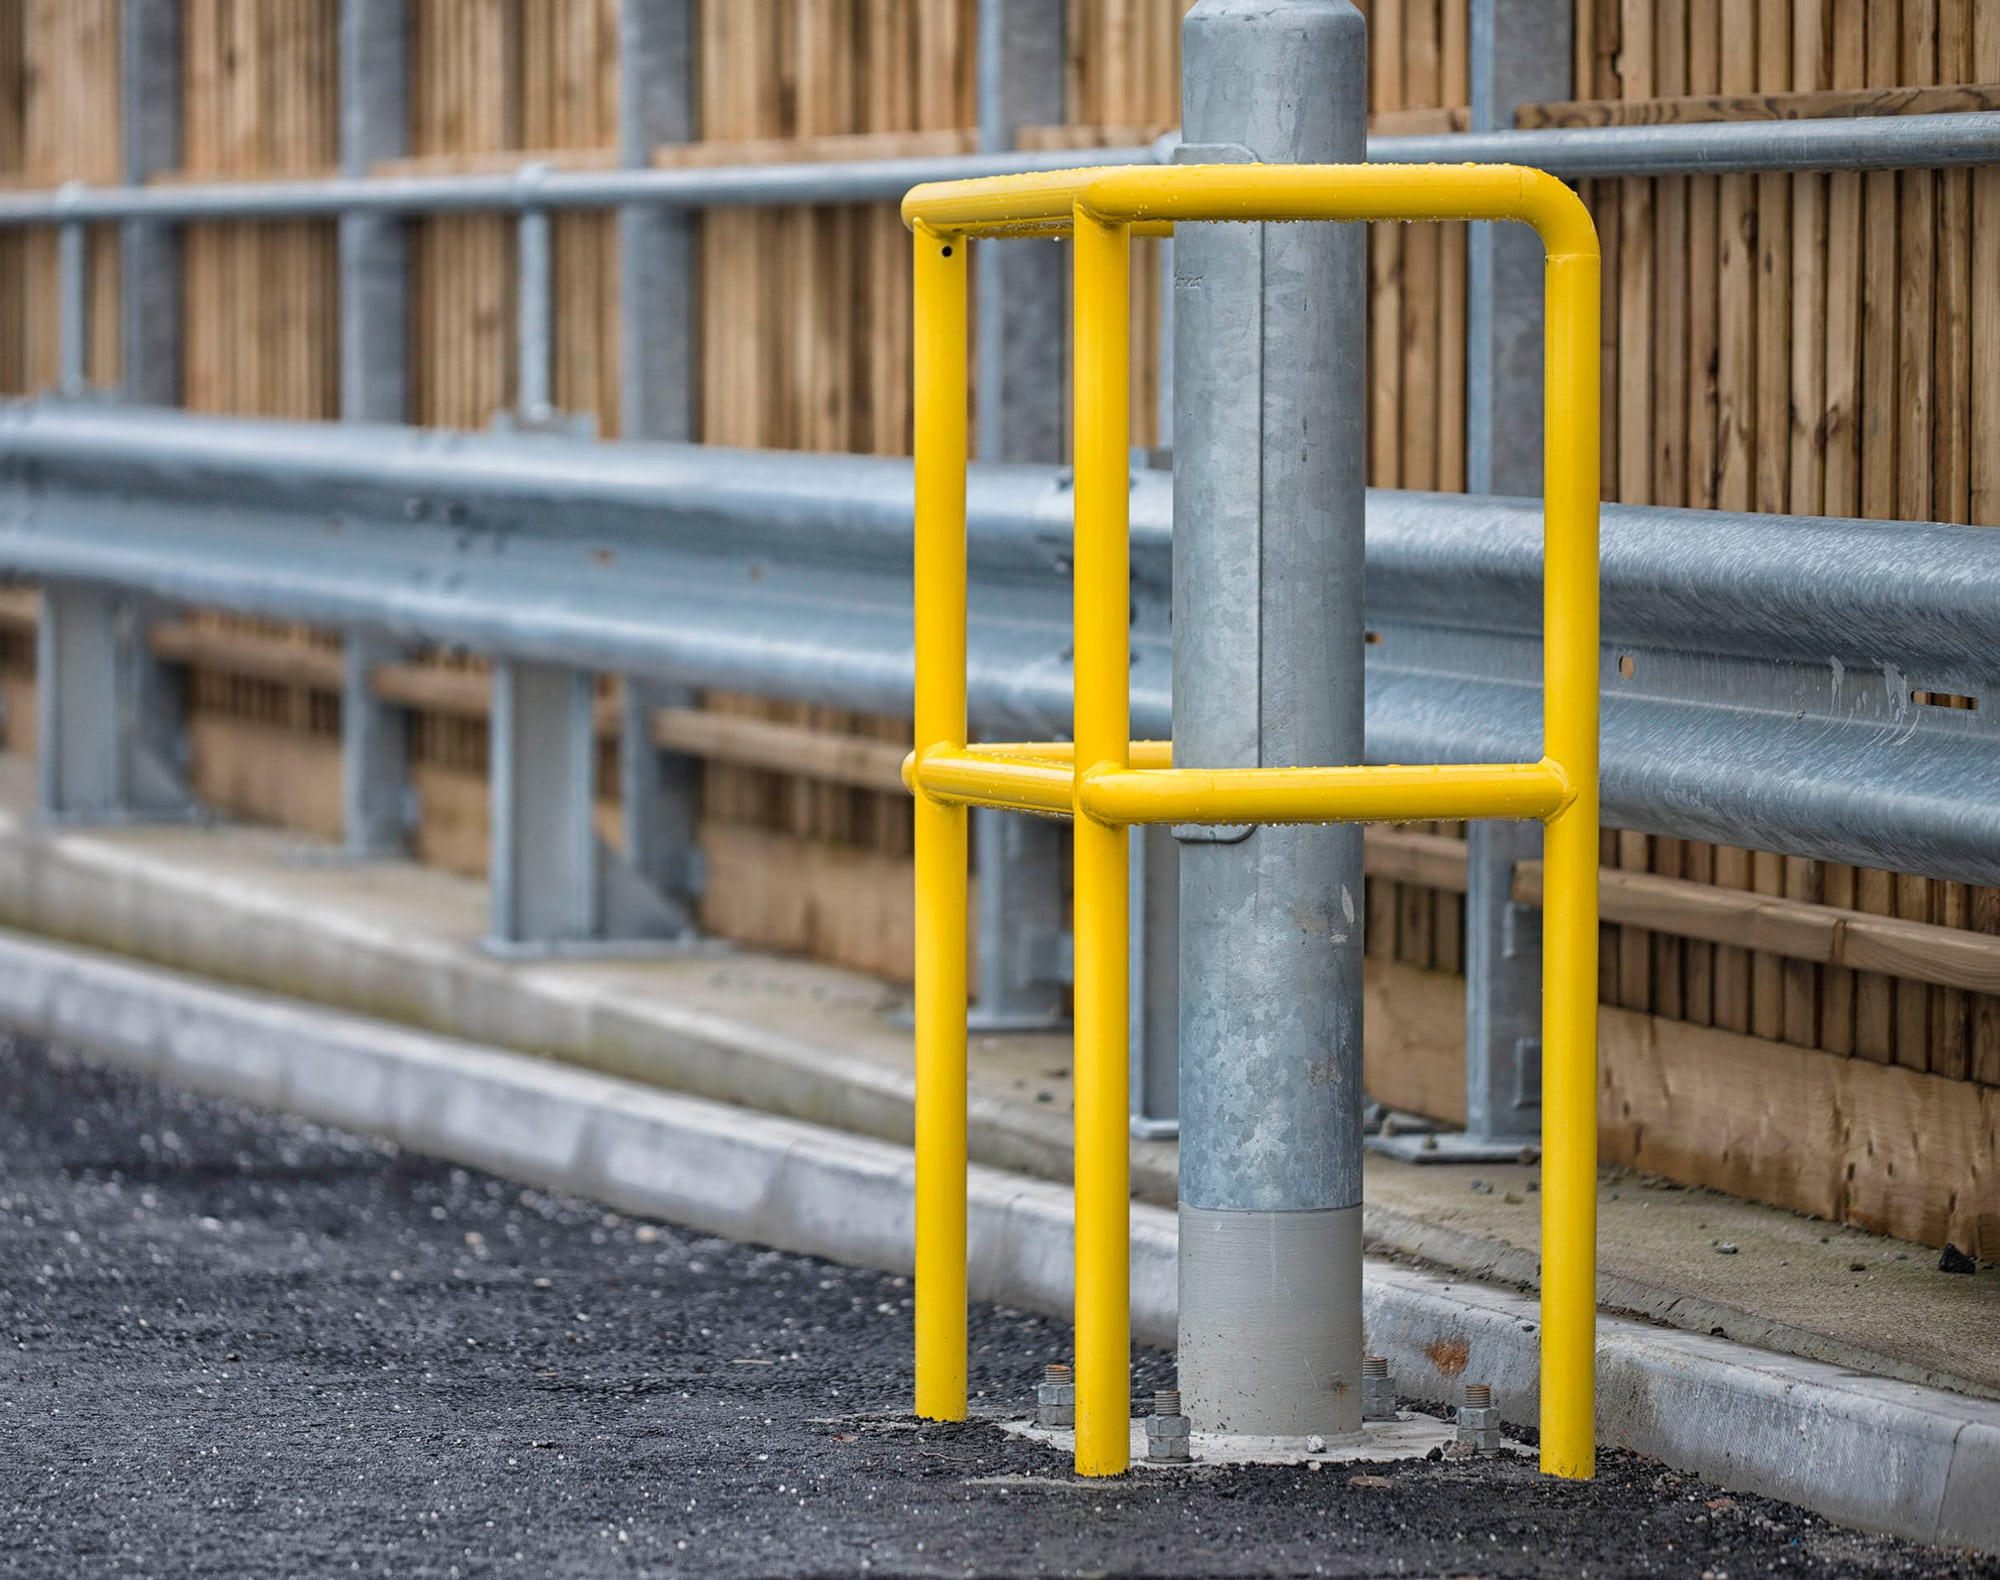 Lamp Post Protector Procter Contracts